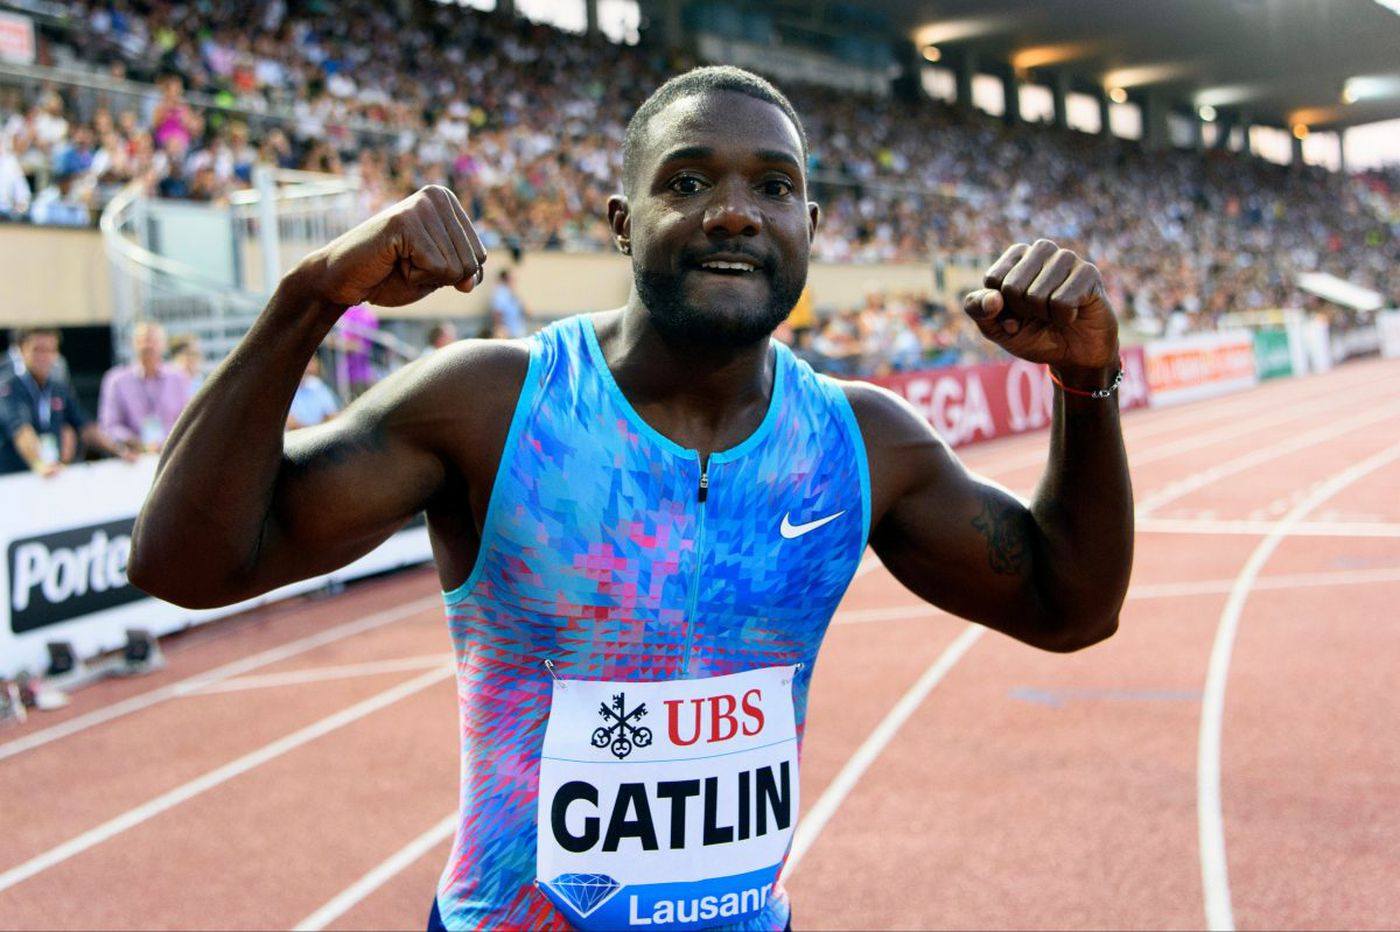 Justin Gatlin excited to be back at Penn for 'USA vs. The World'